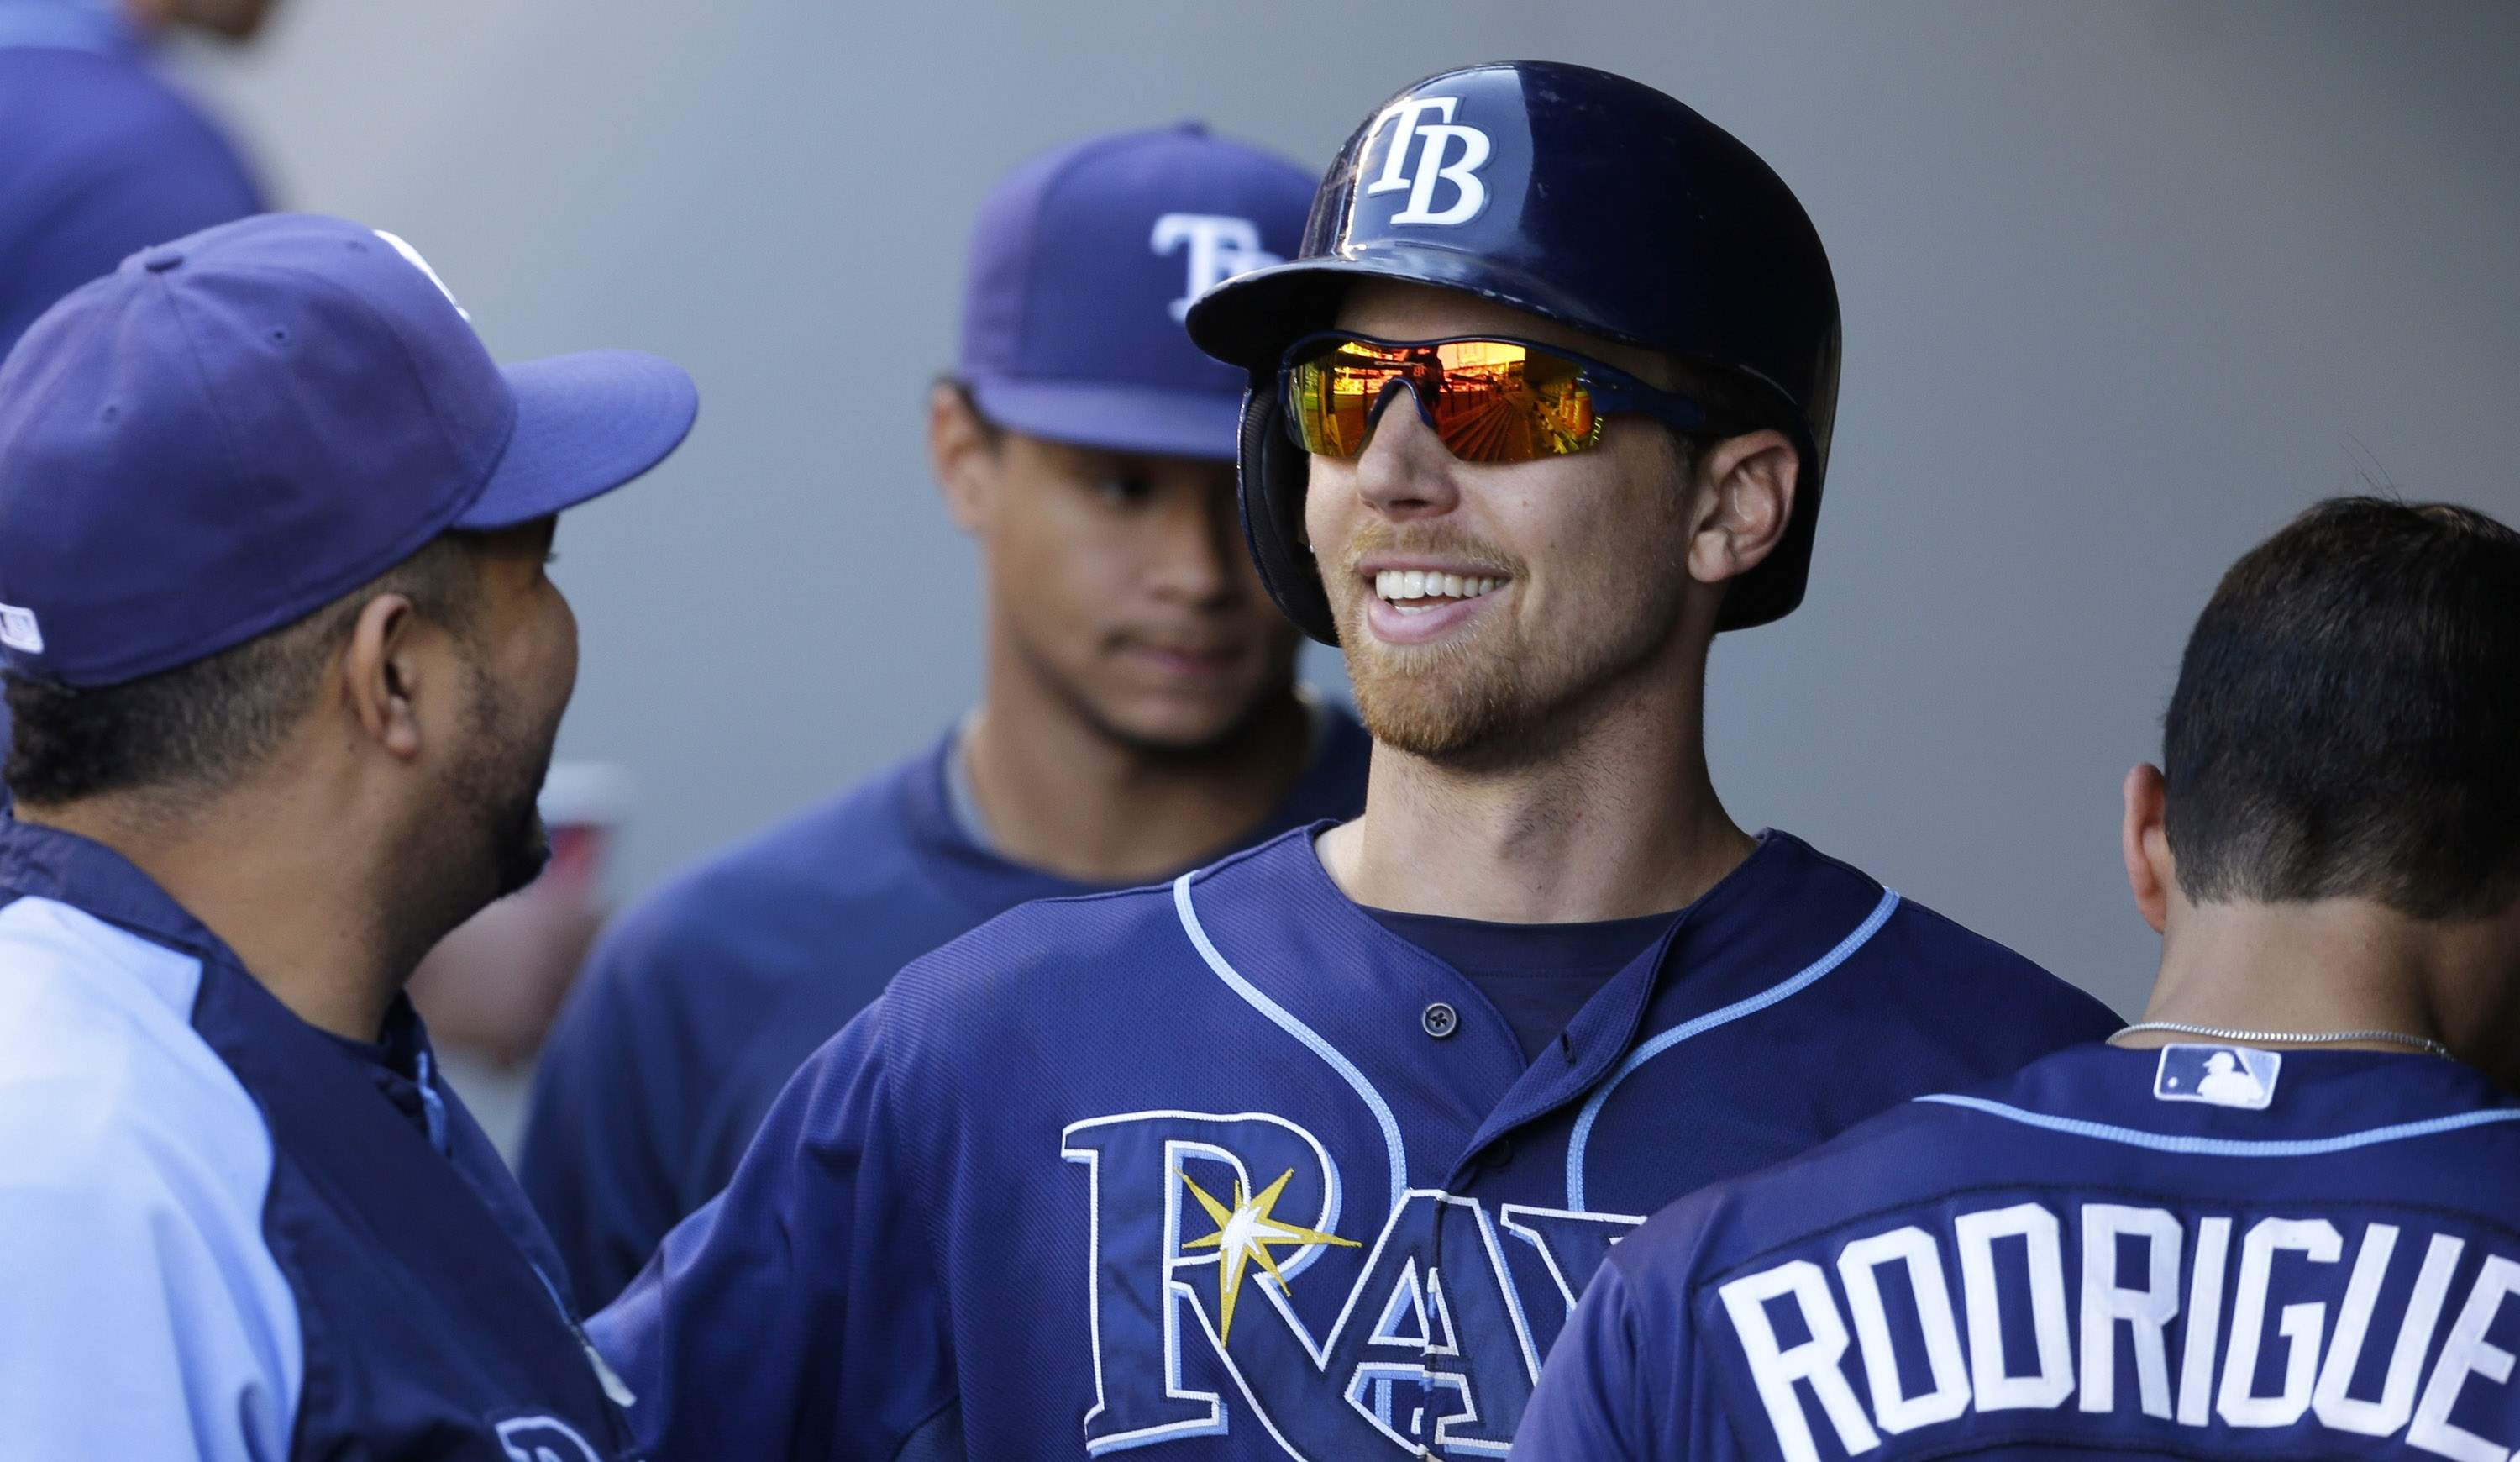 Interview: Tampa Bay Rays' Ben Zobrist, Wife on Faith, Family, Music, Baseball